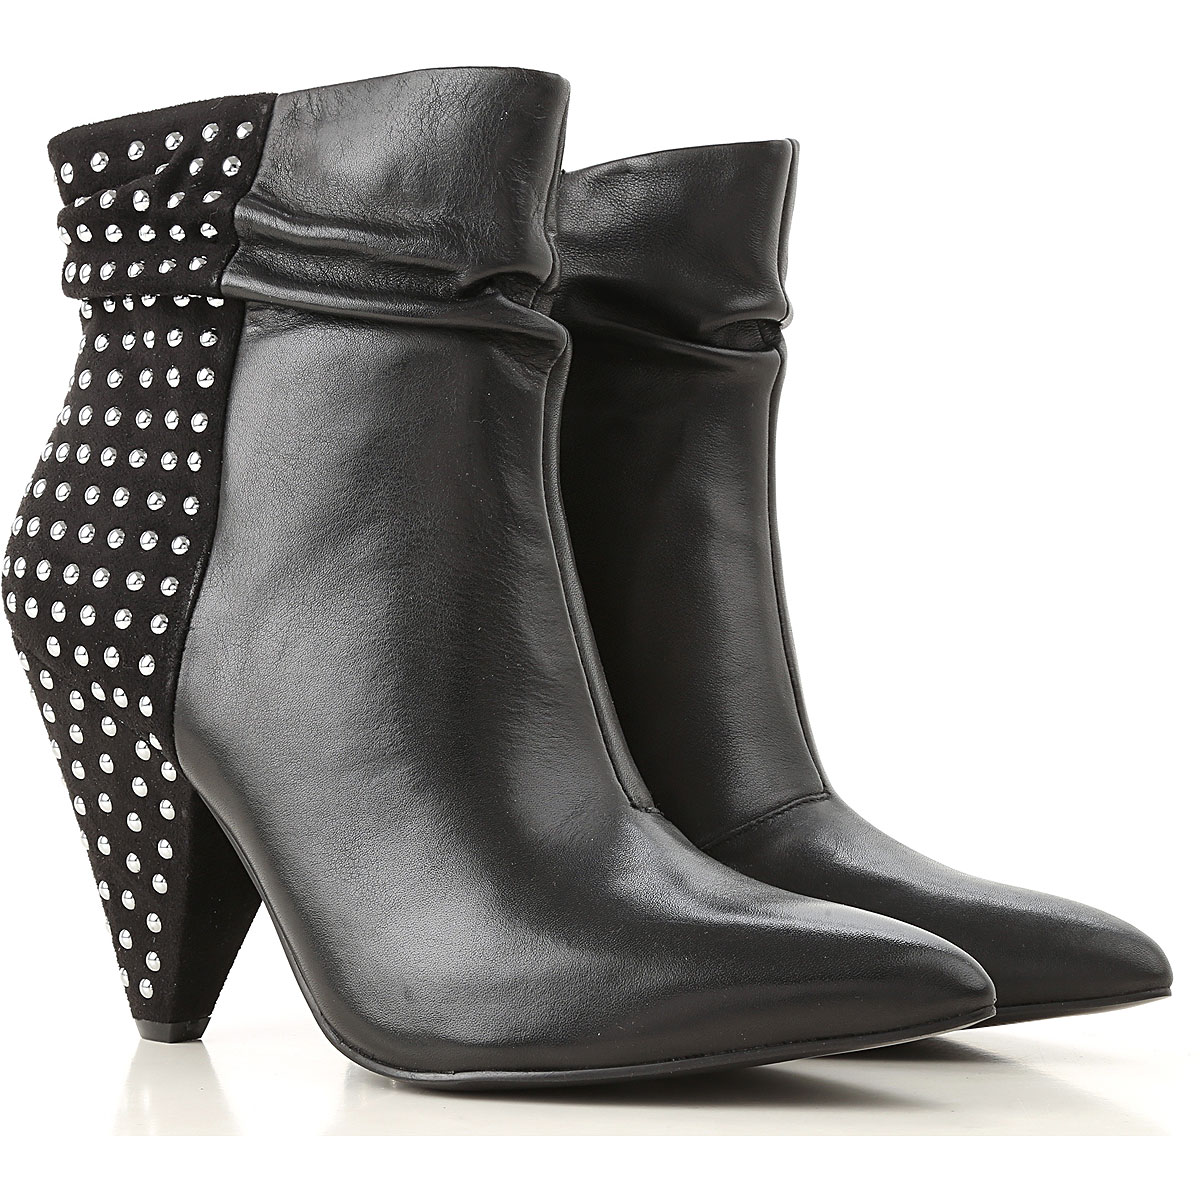 Liu Jo Boots for Women, Booties, Black, Leather, 2017, 6 7 8